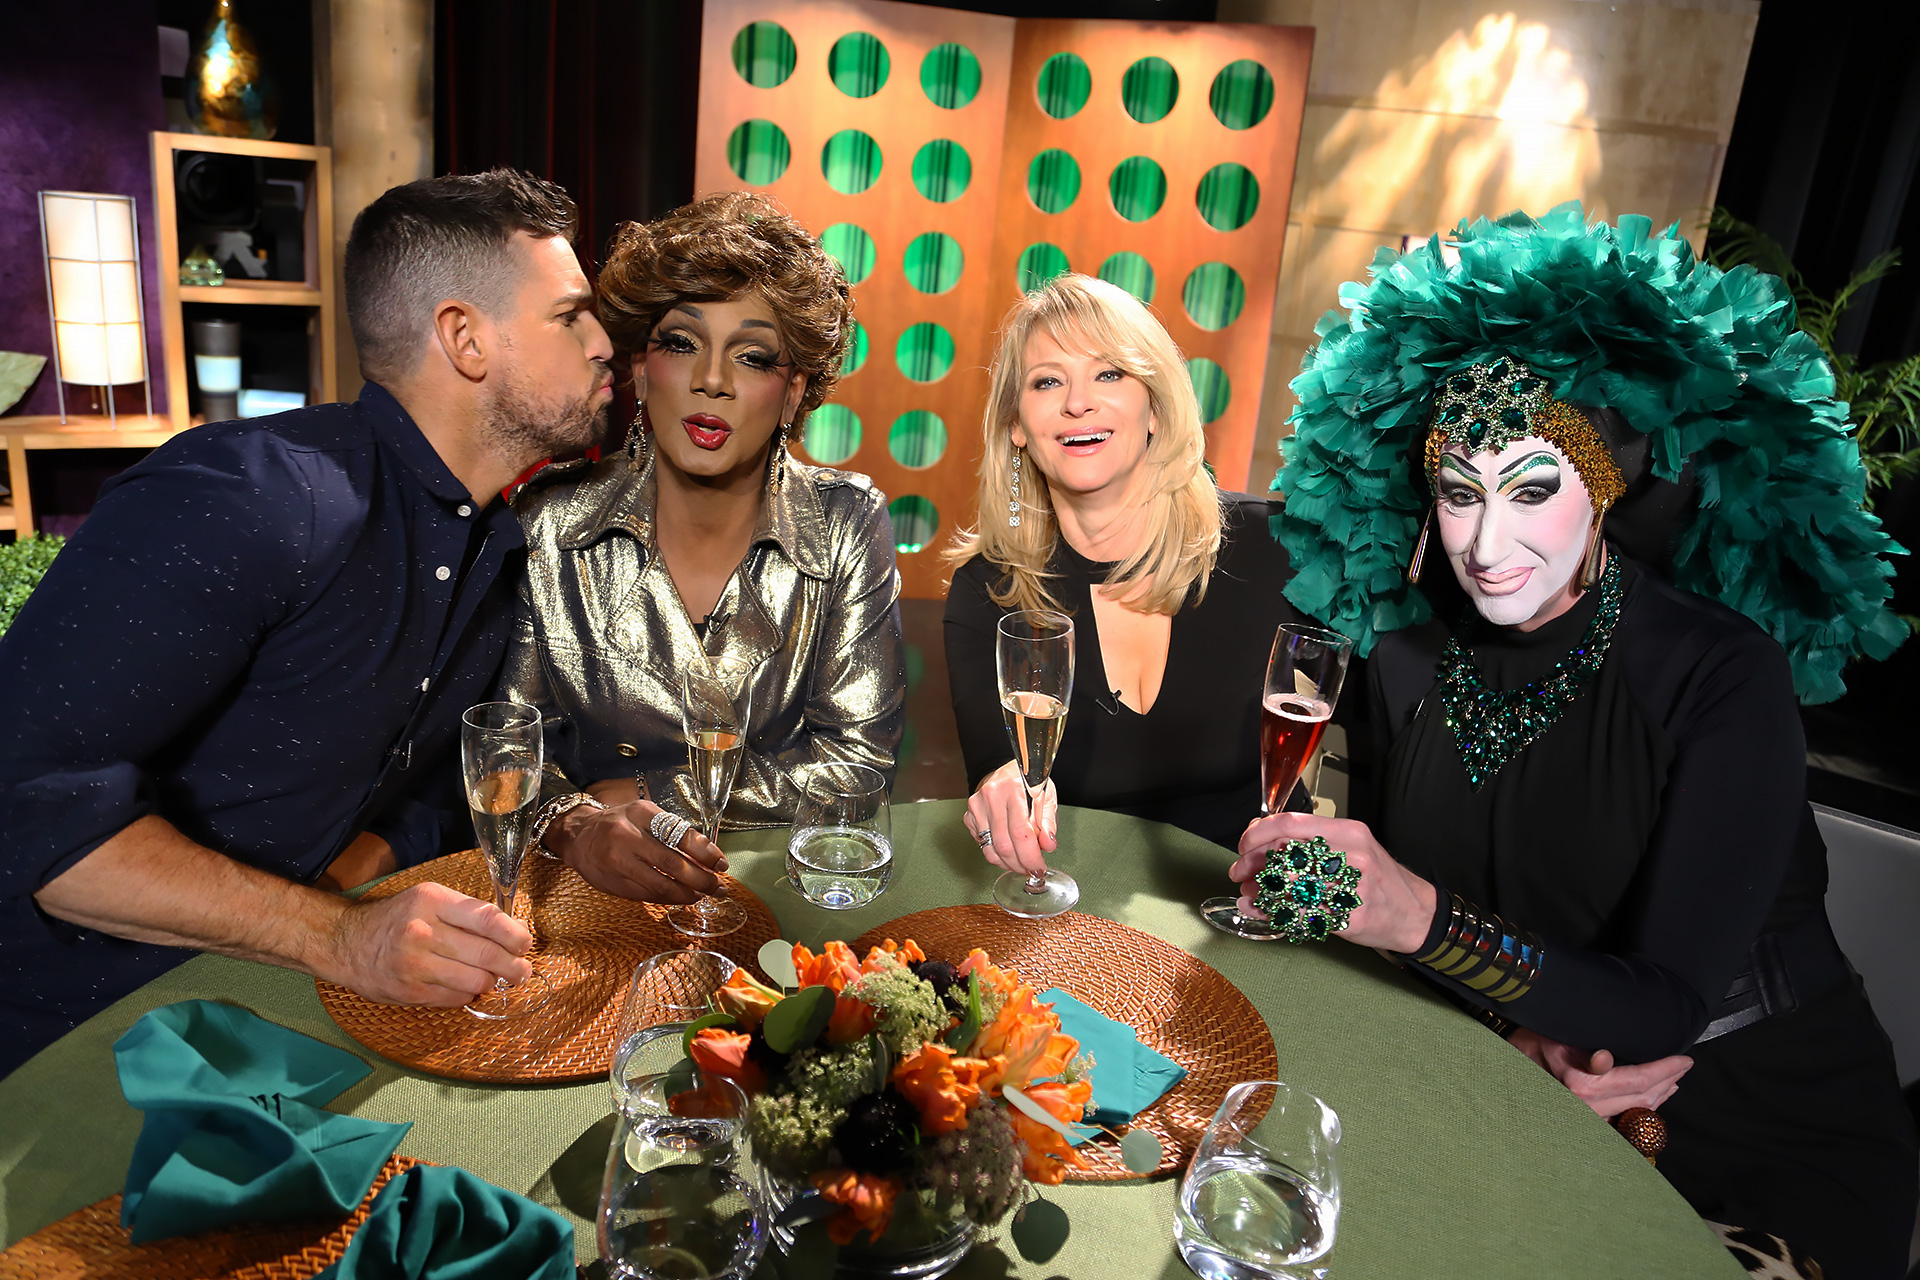 Host Leslie Sbrocco and guests having fun on the set of season 13 episode 2.